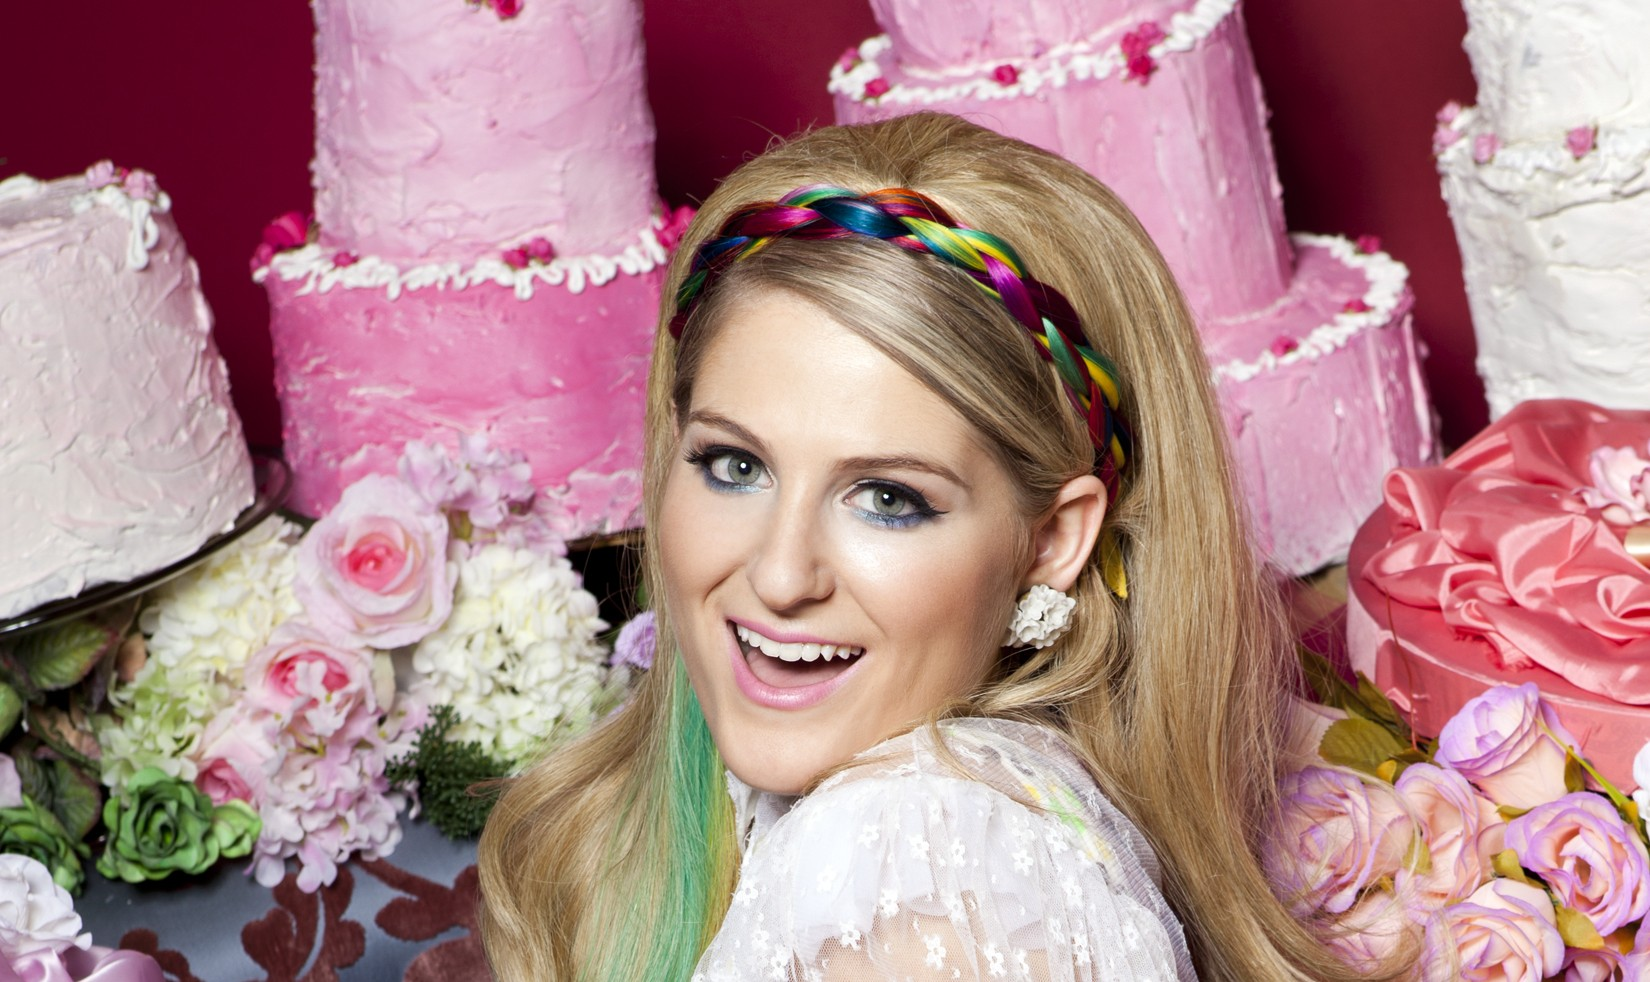 MeghanTrainor